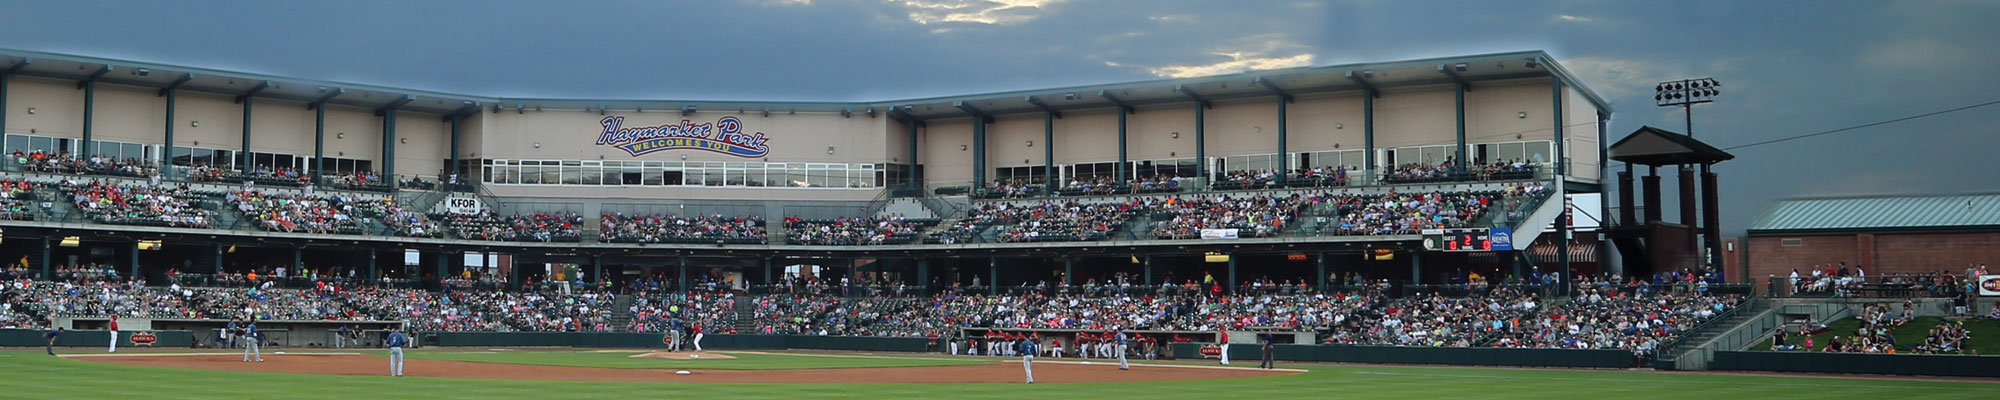 Haymarket Park Stadium Full Seats